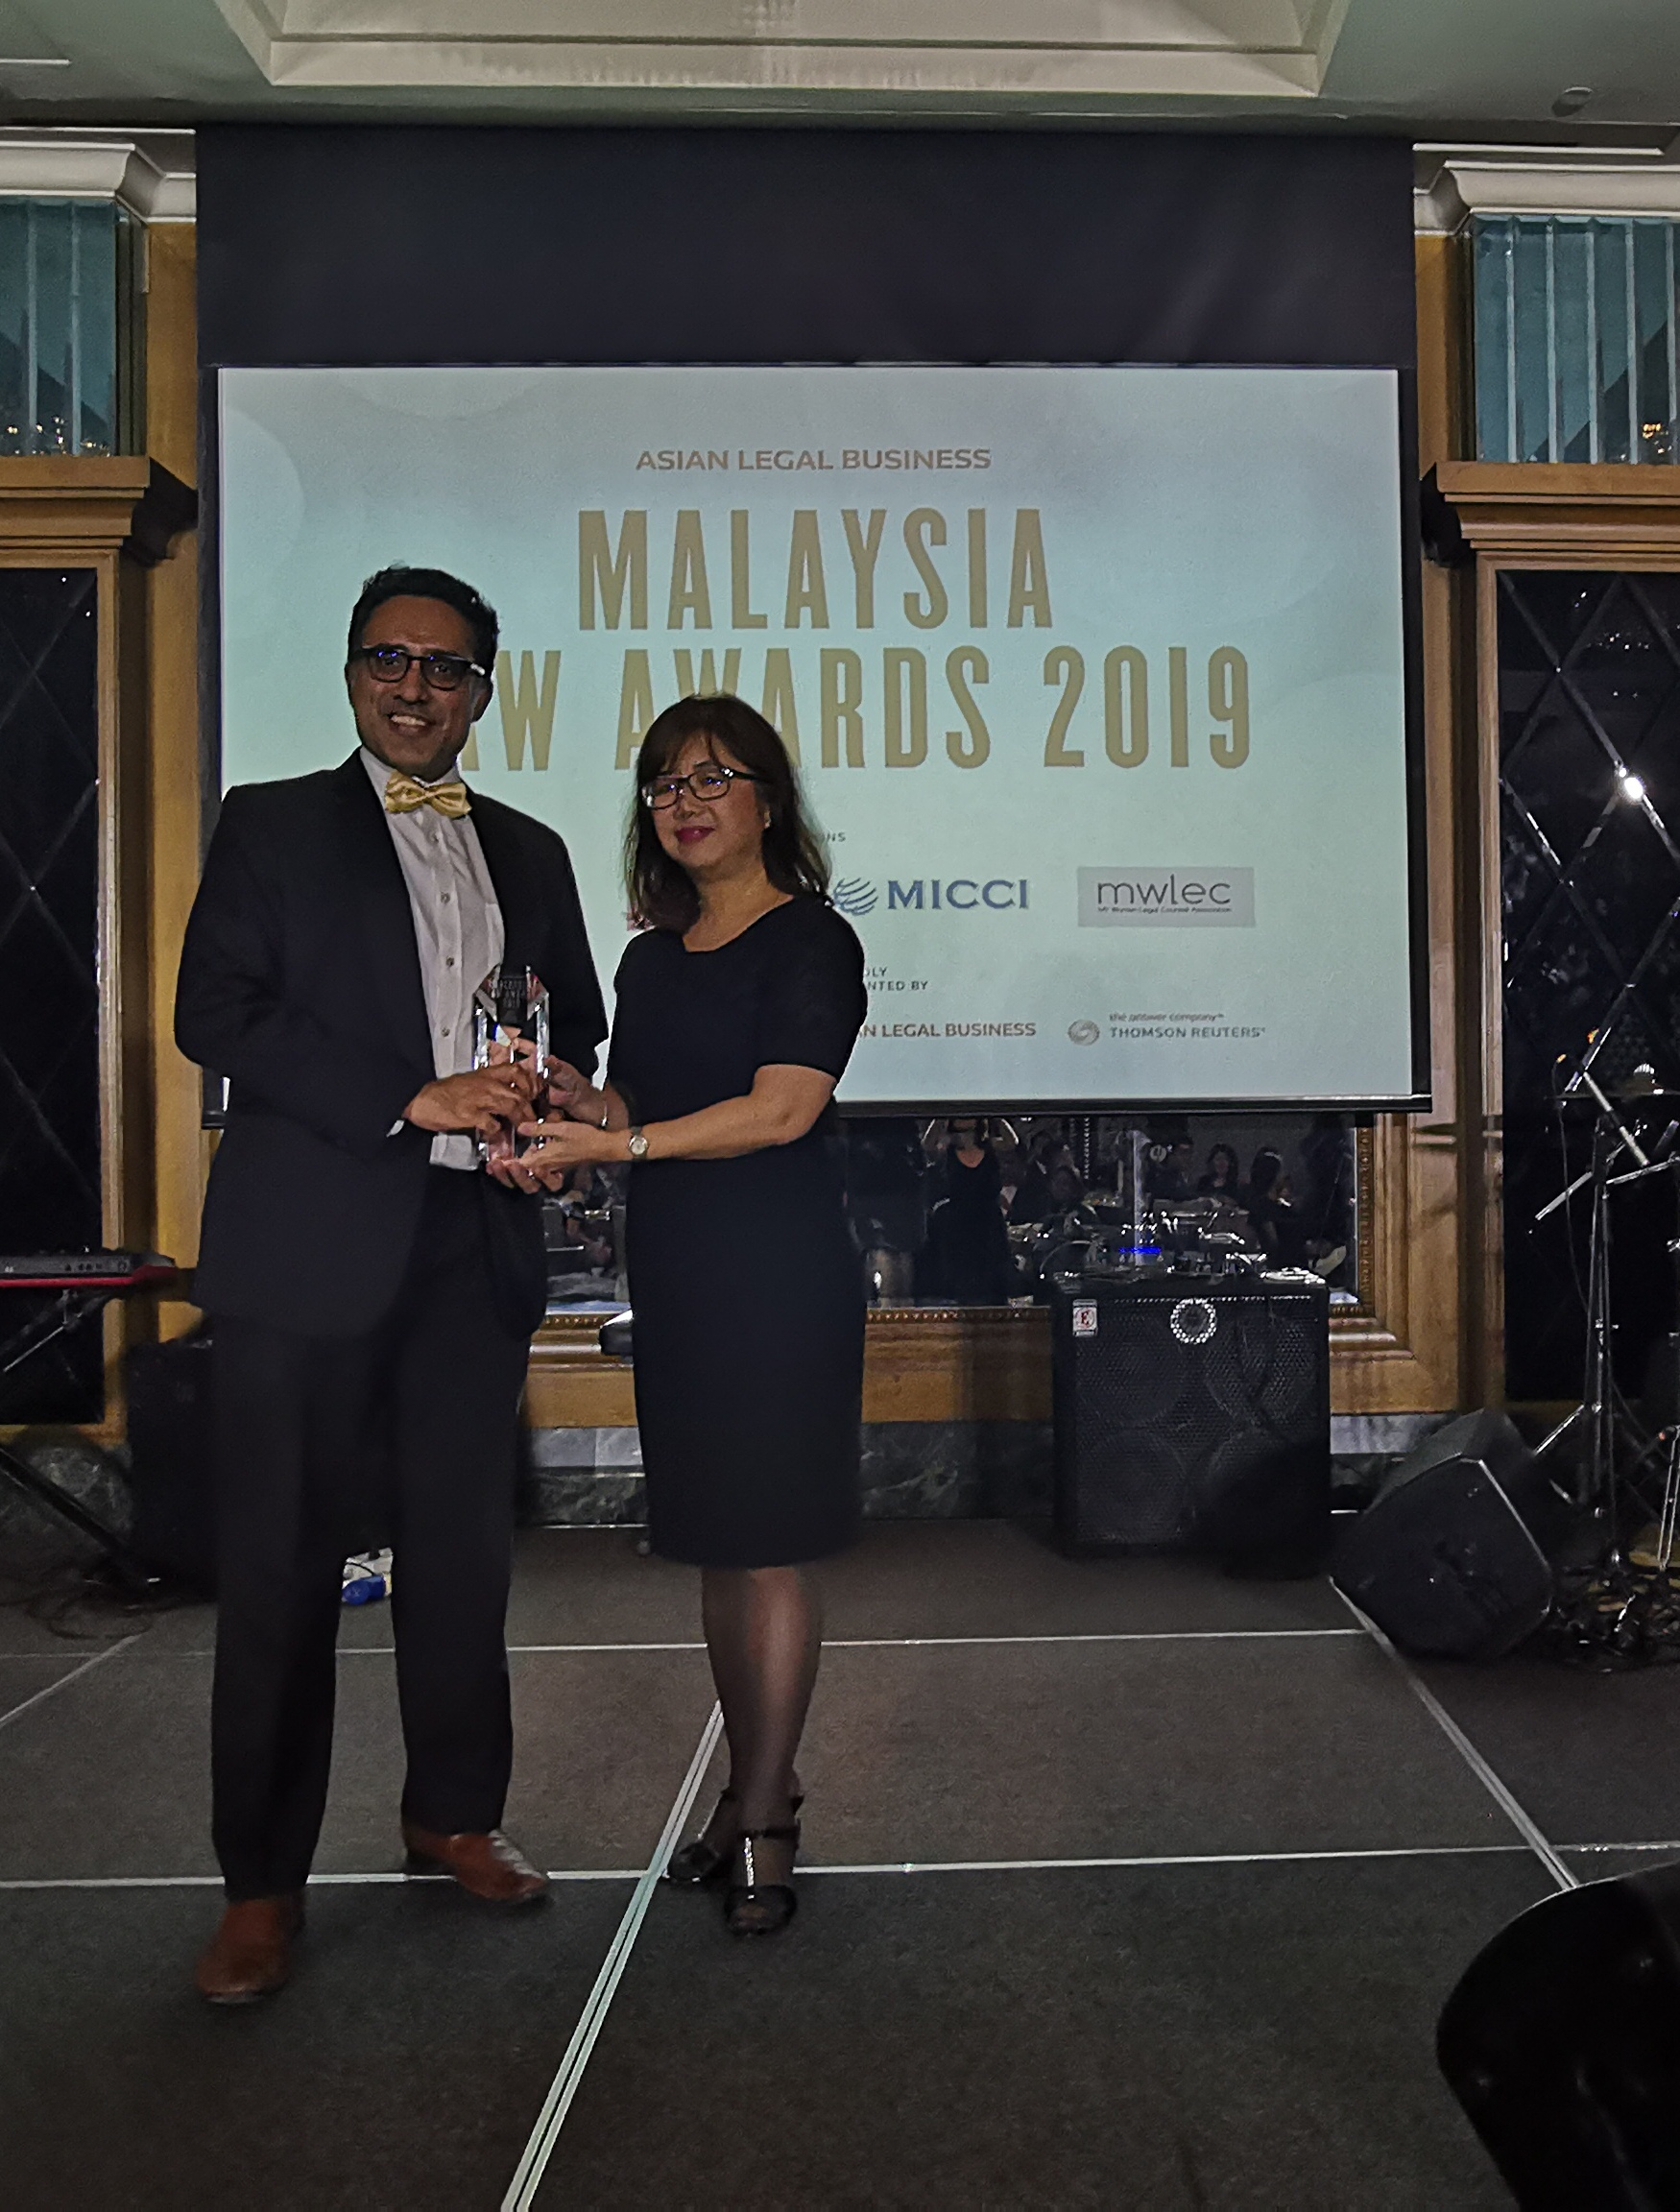 Suaran receiving the award on behalf of